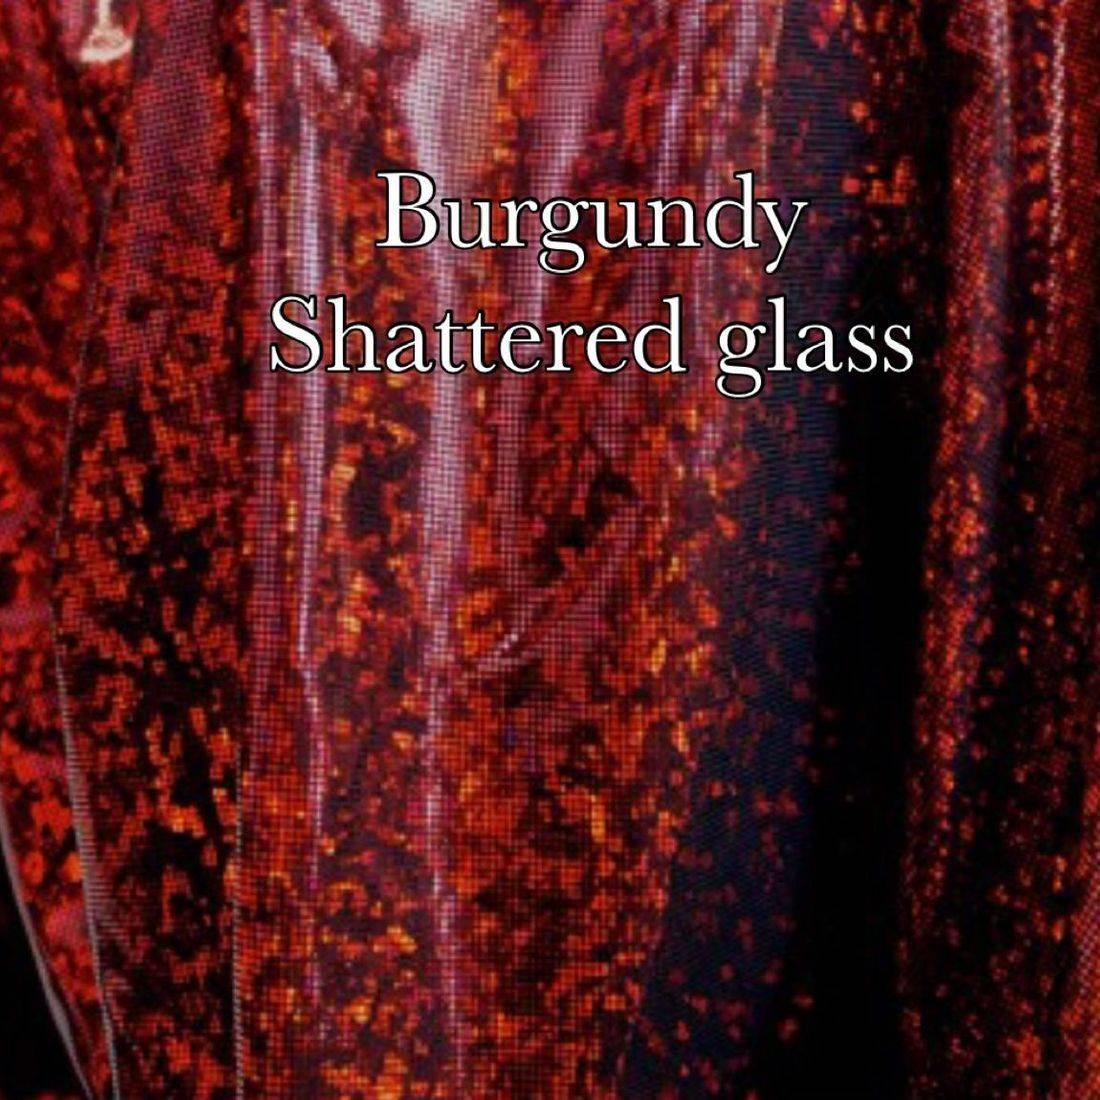 Burgundy shattered glass